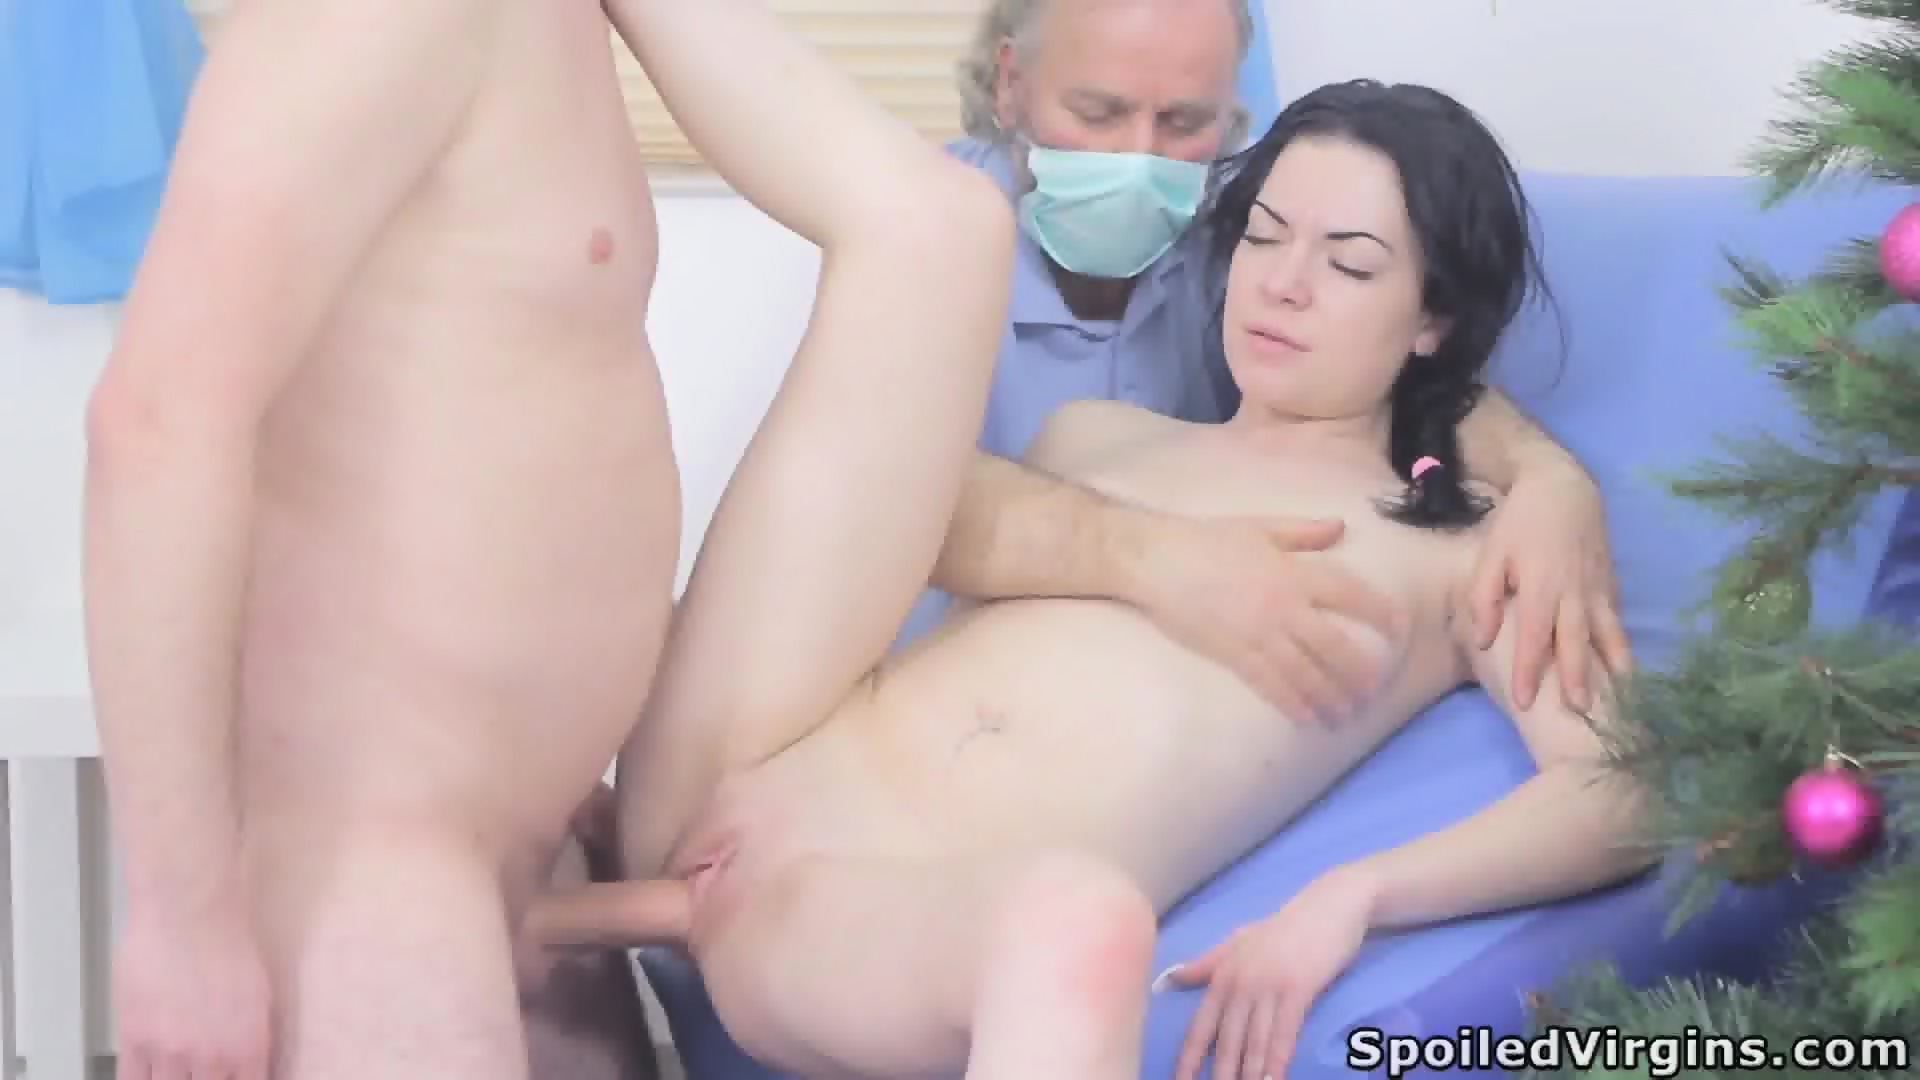 betty ballhaus porn fake